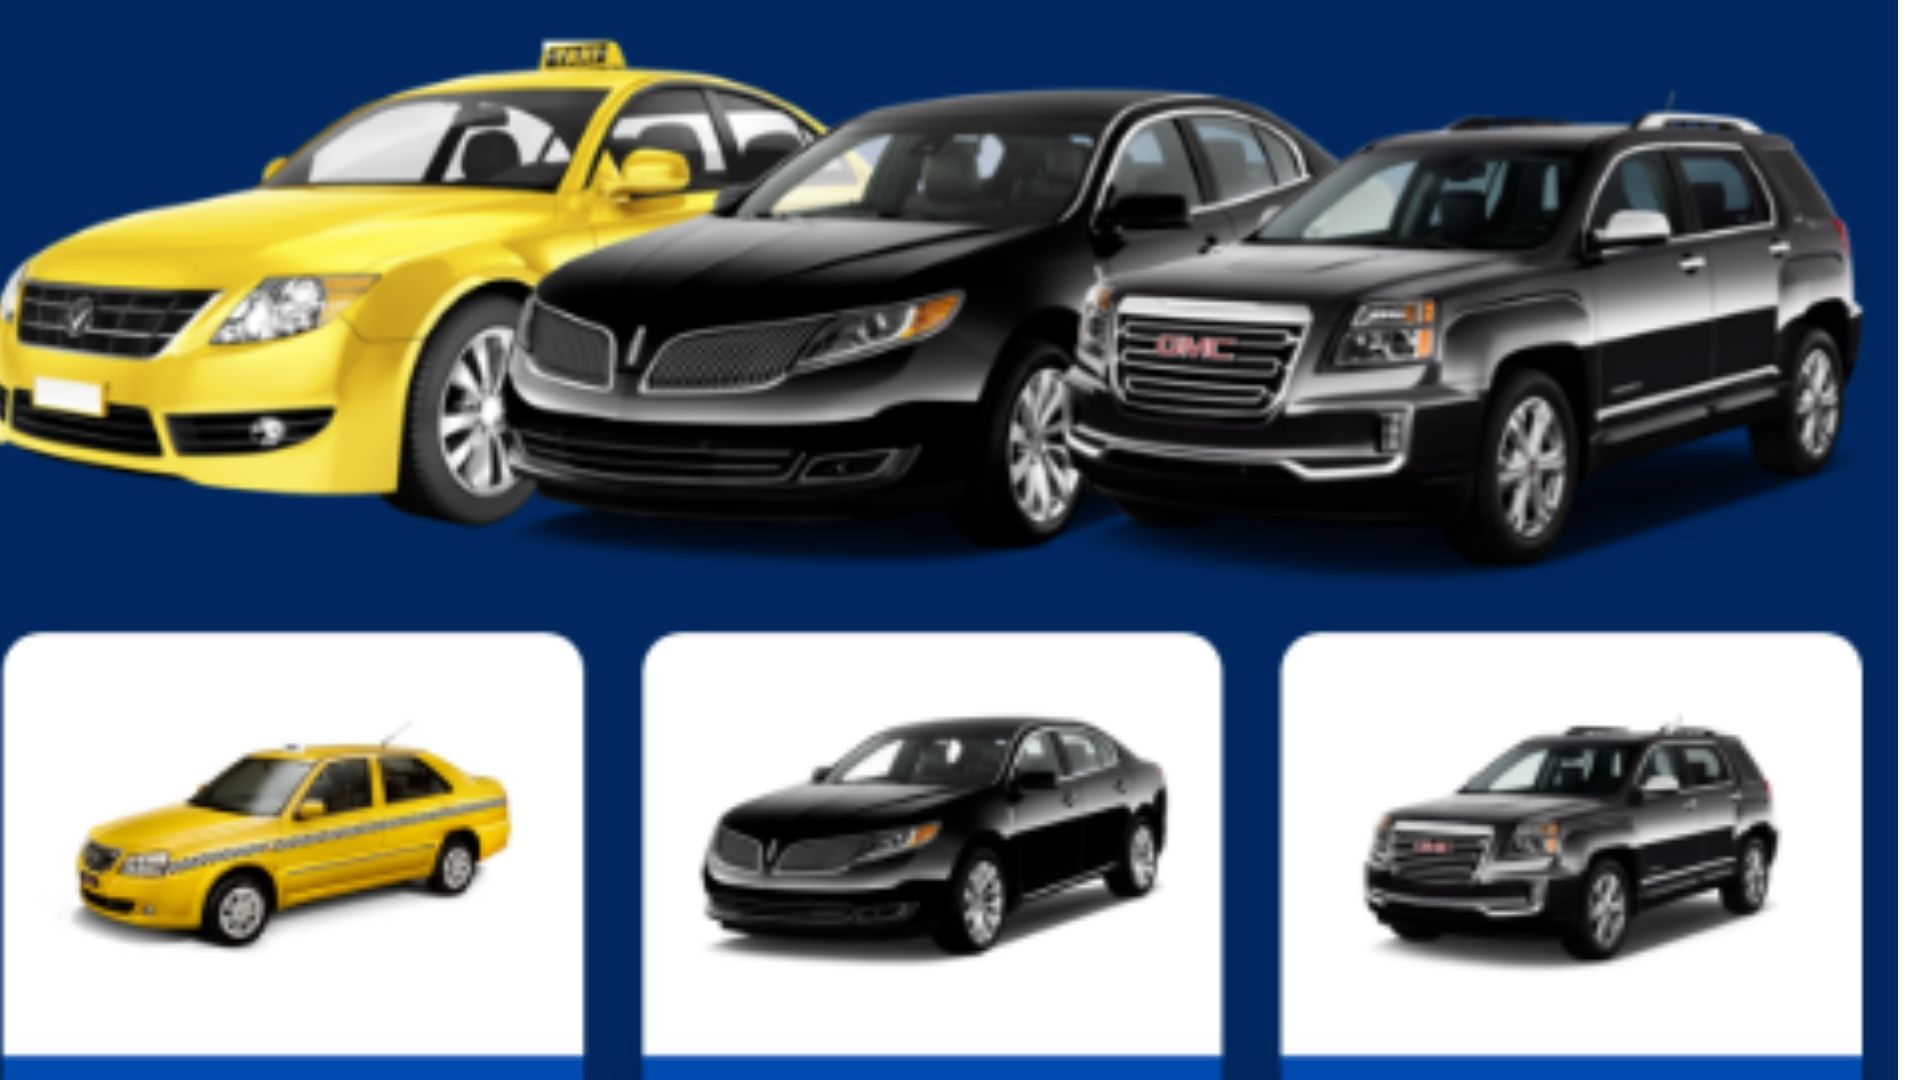 For A Safe Convenient Transportation To Dallas Fort Worth International Airport Ge Dfw Airport Airport Transportation Dallas Fort Worth International Airport